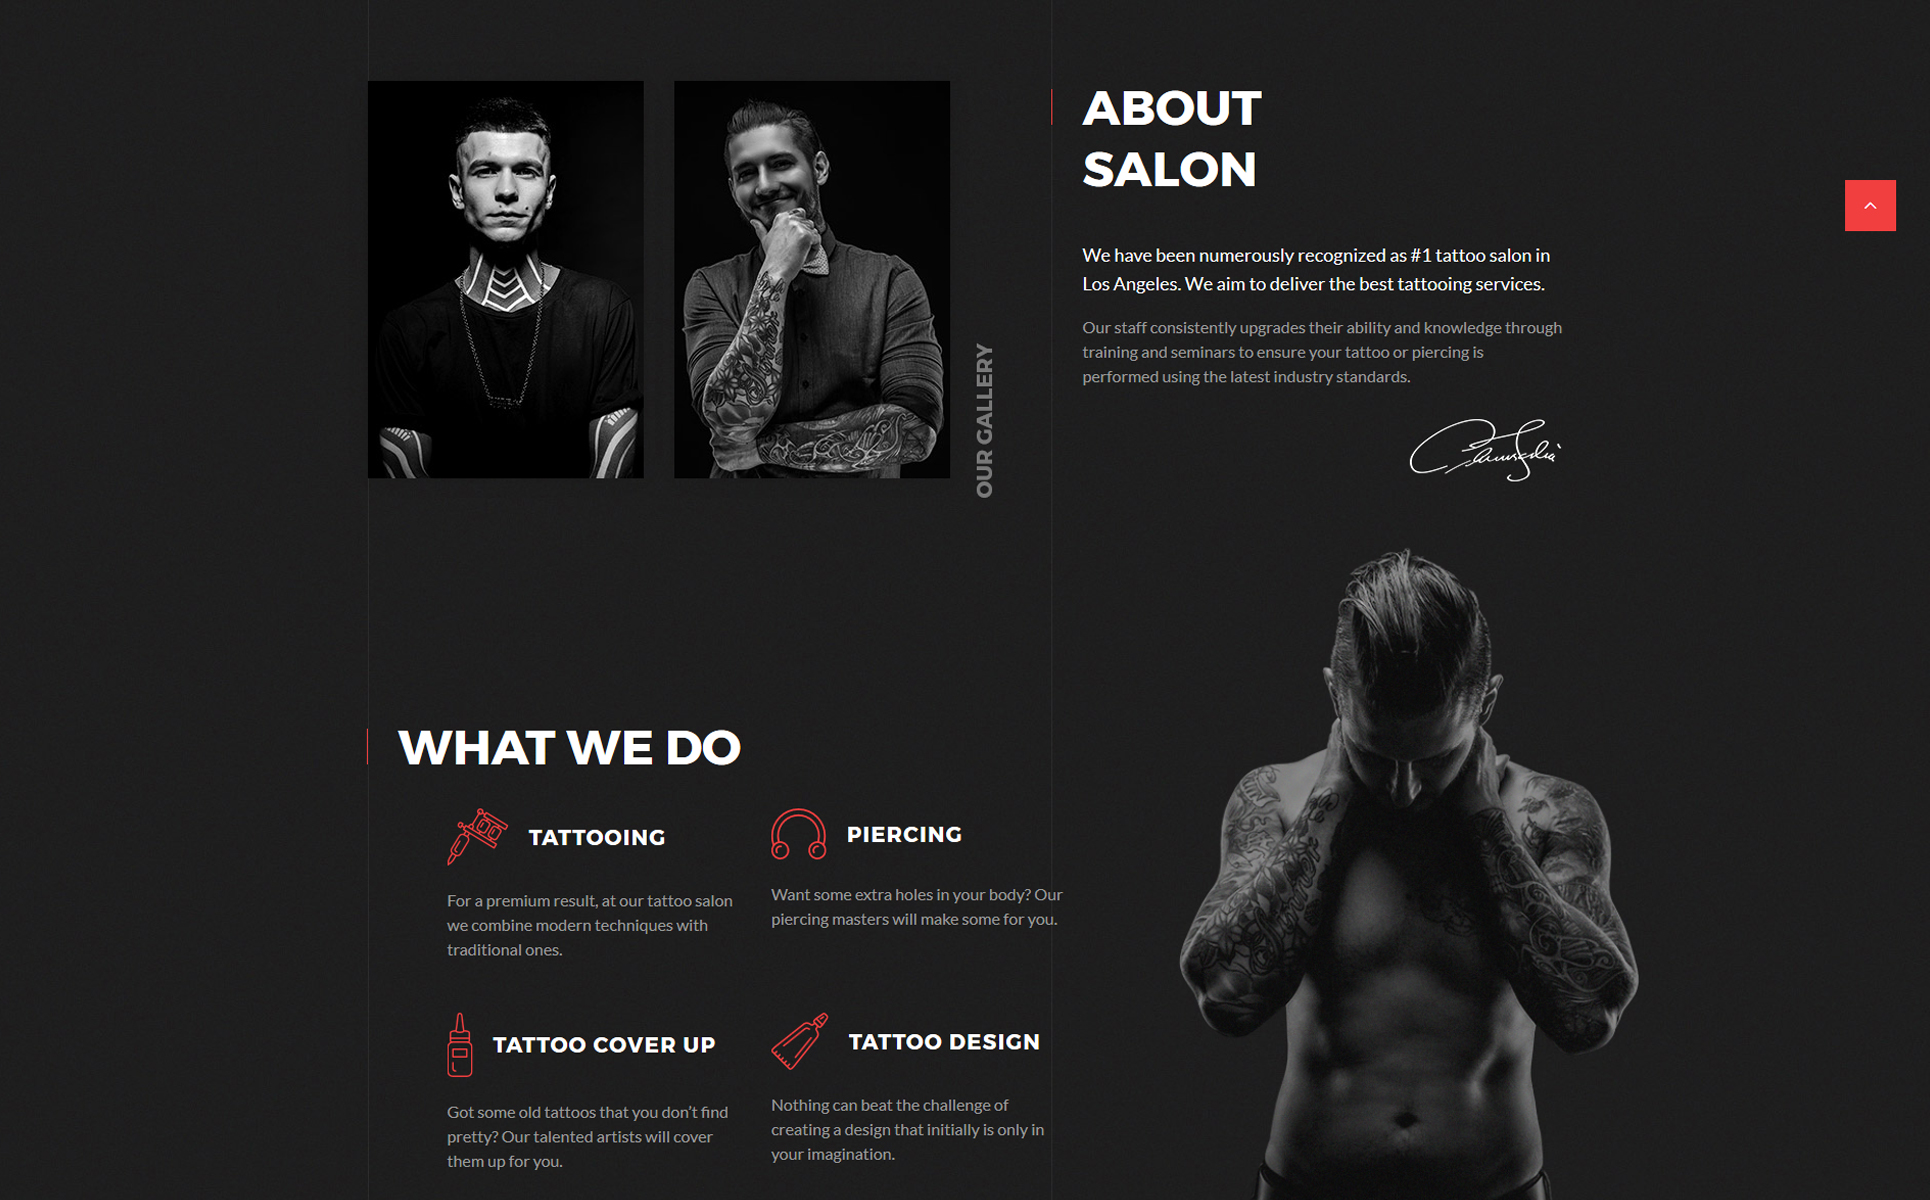 DarkInk - Tattoo Salon Multipage HTML5 Website Template